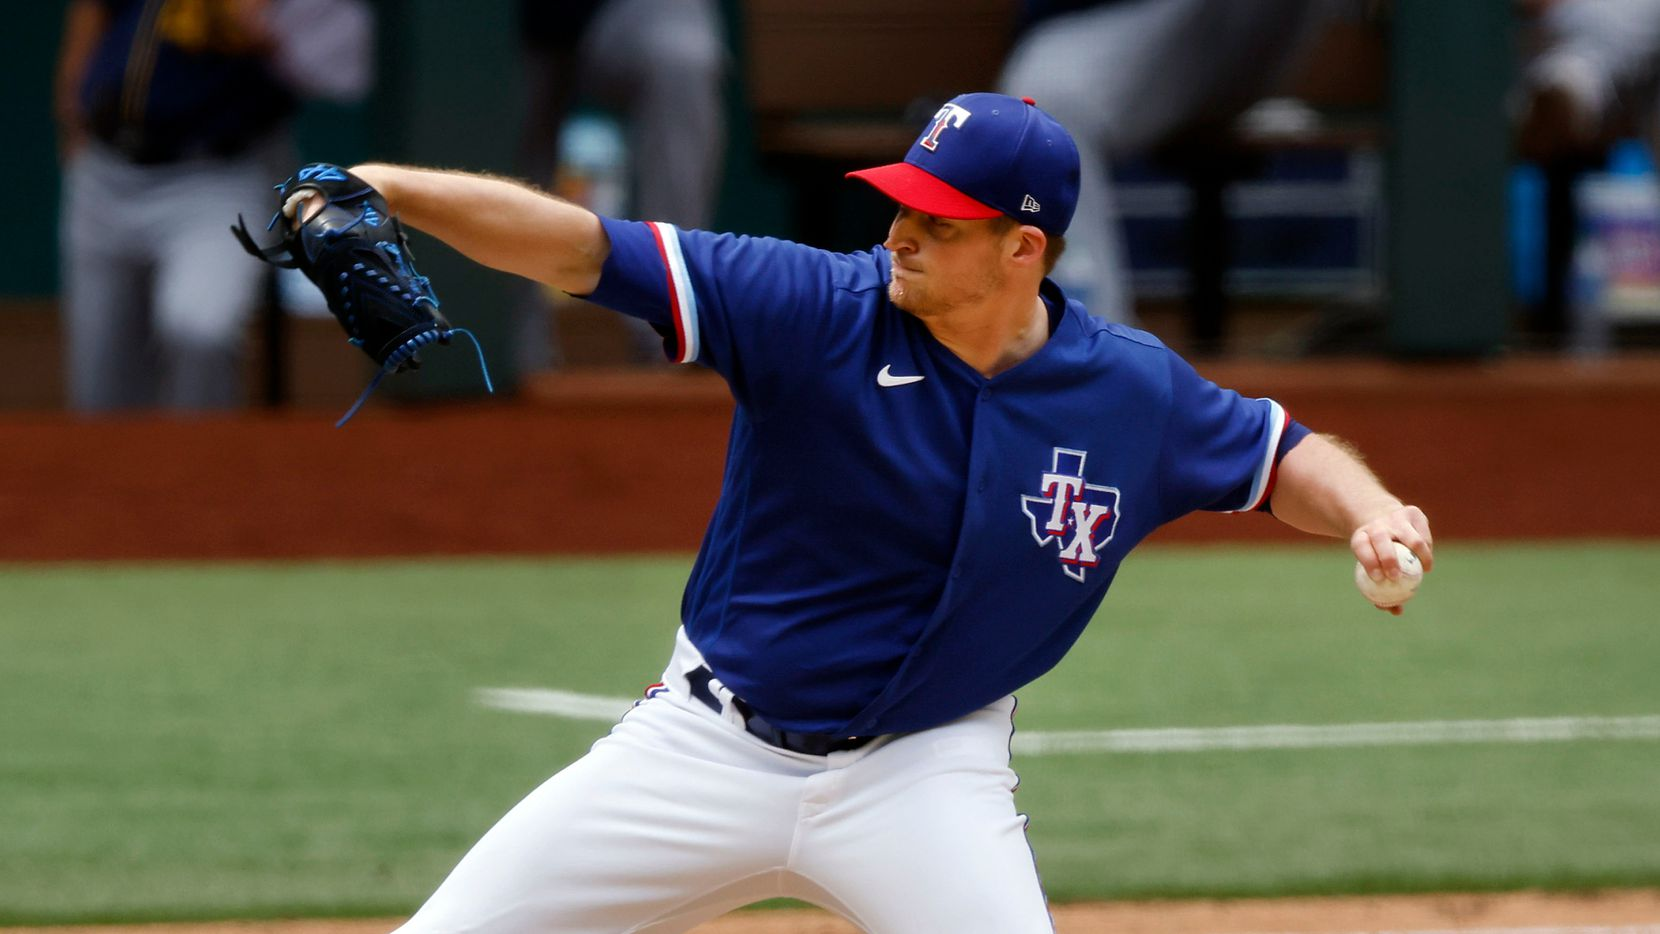 Texas Rangers relief pitcher Wes Benjamin (63) throws against the Milwaukee Brewers in the seventh inning at Globe Life Field in Arlington, Texas. The teams were playing in an exhibition game, Tuesday, March 30, 2021. (Tom Fox/The Dallas Morning News)